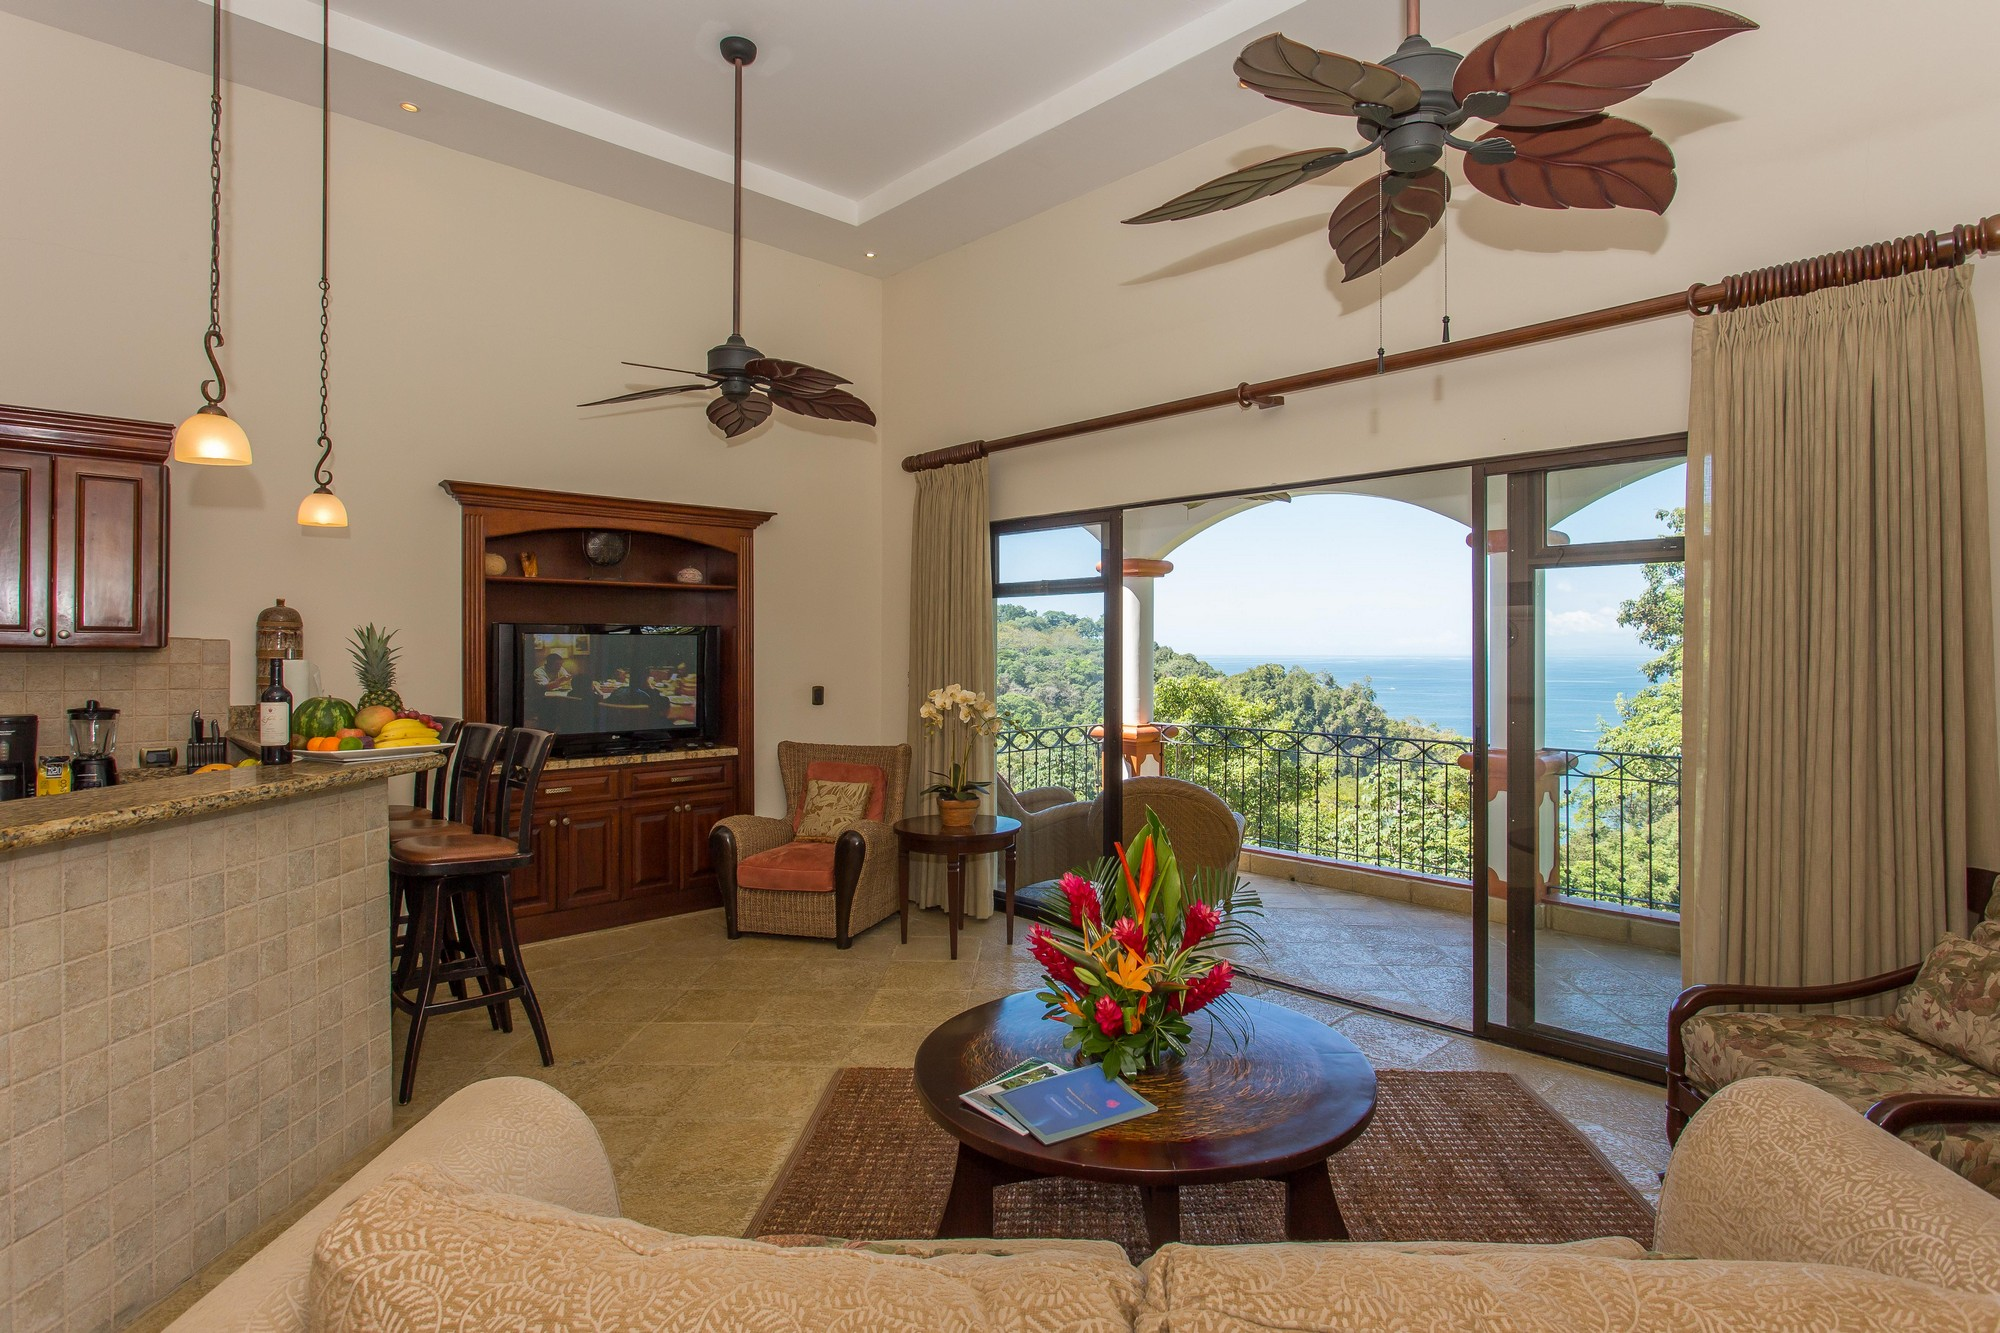 The Shana Residences Penthouse #331